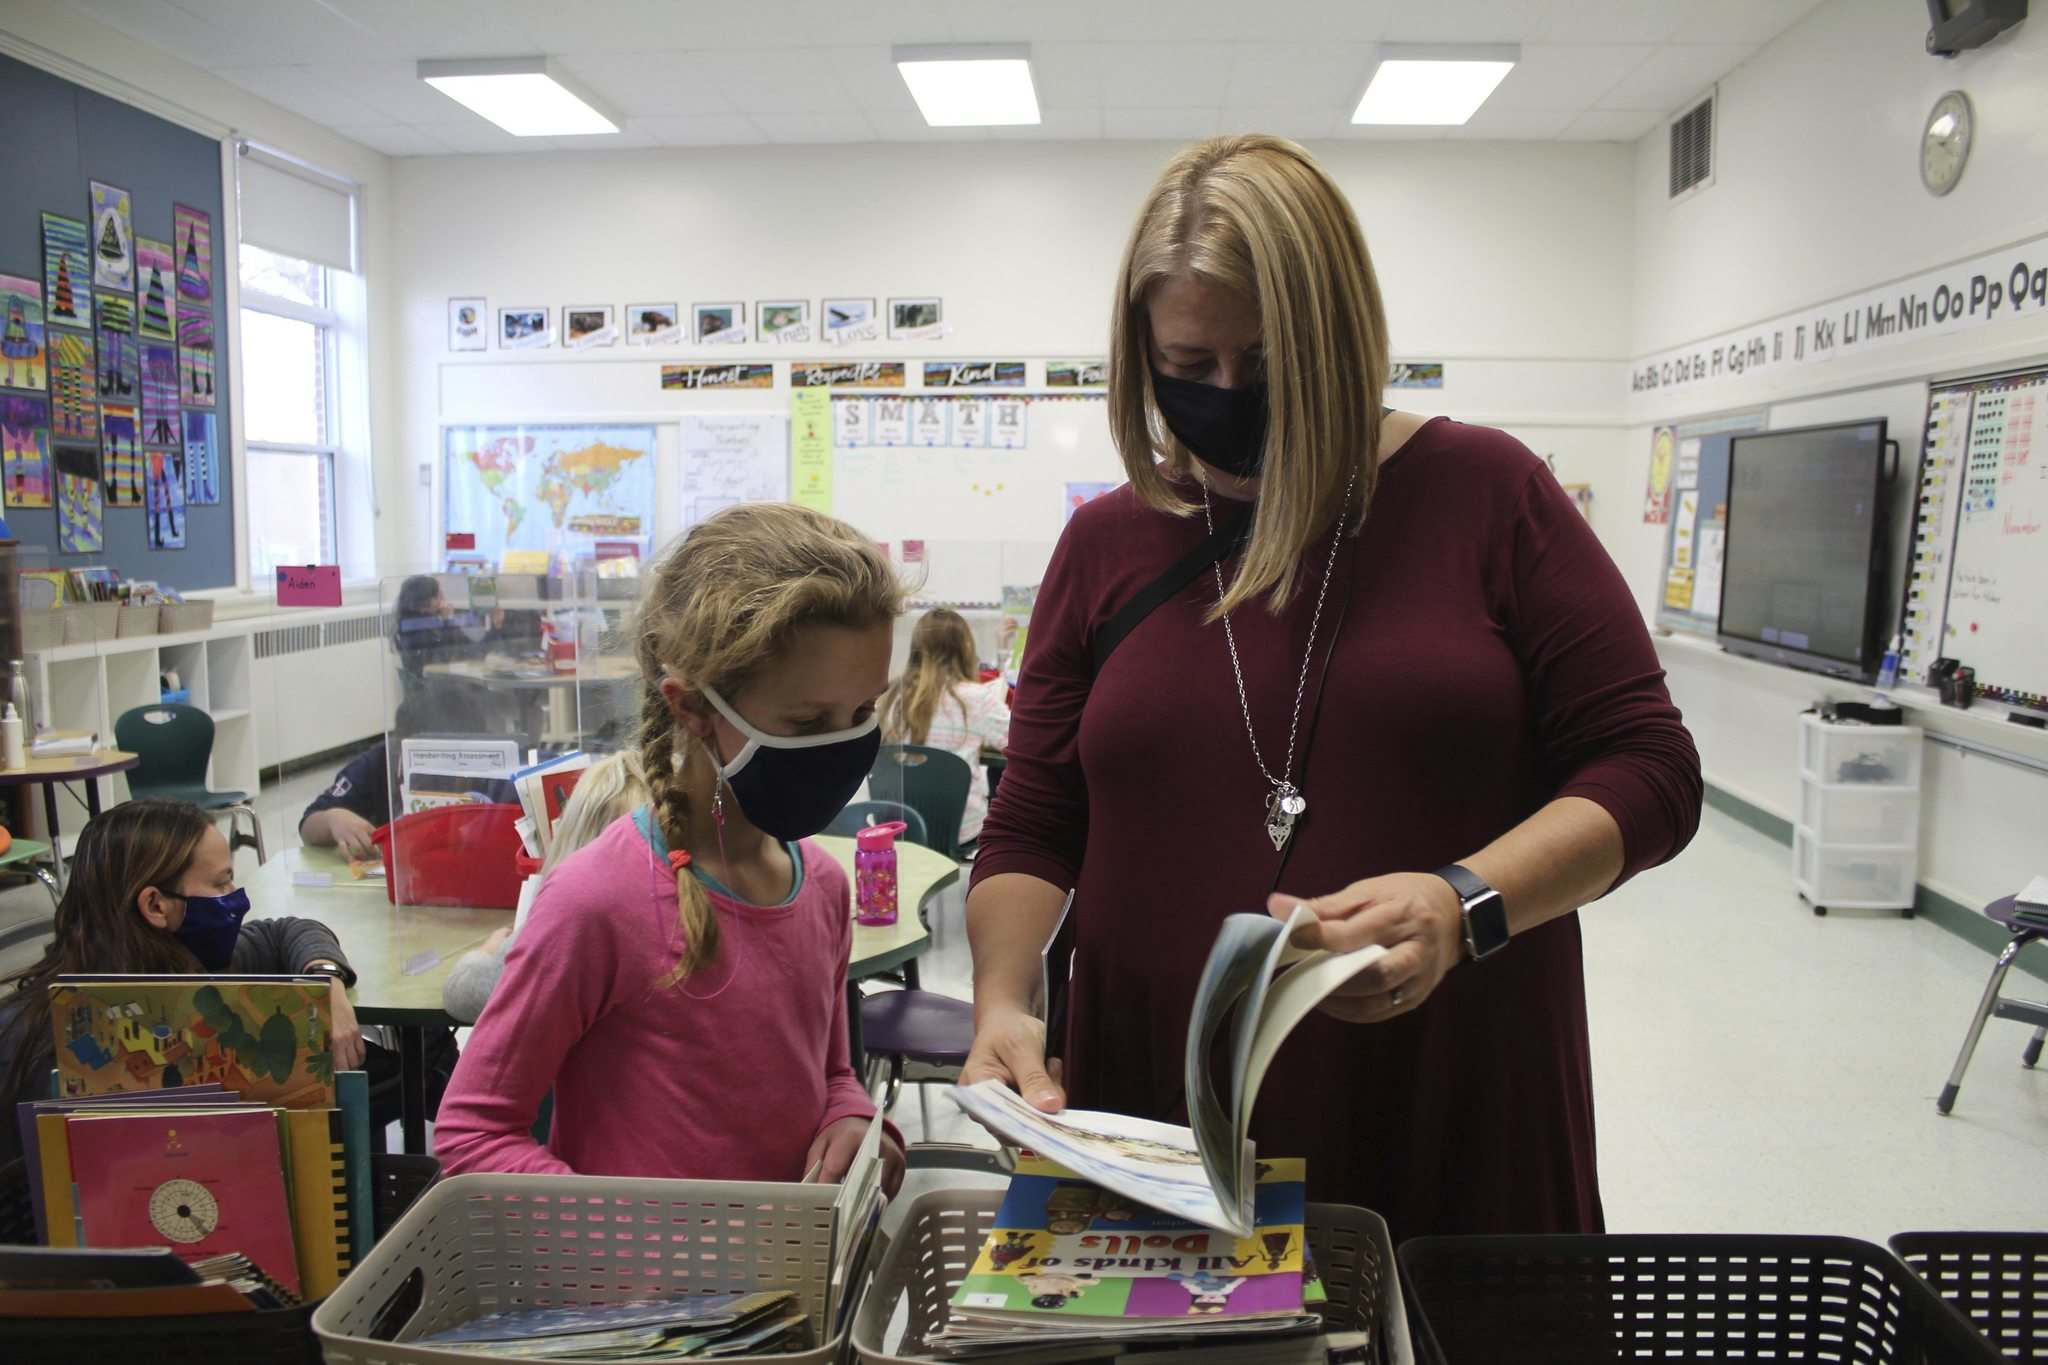 Grade 3/4 teacher at Governor Semple School, Shelley Torz, looks at a book with student, Chloe.